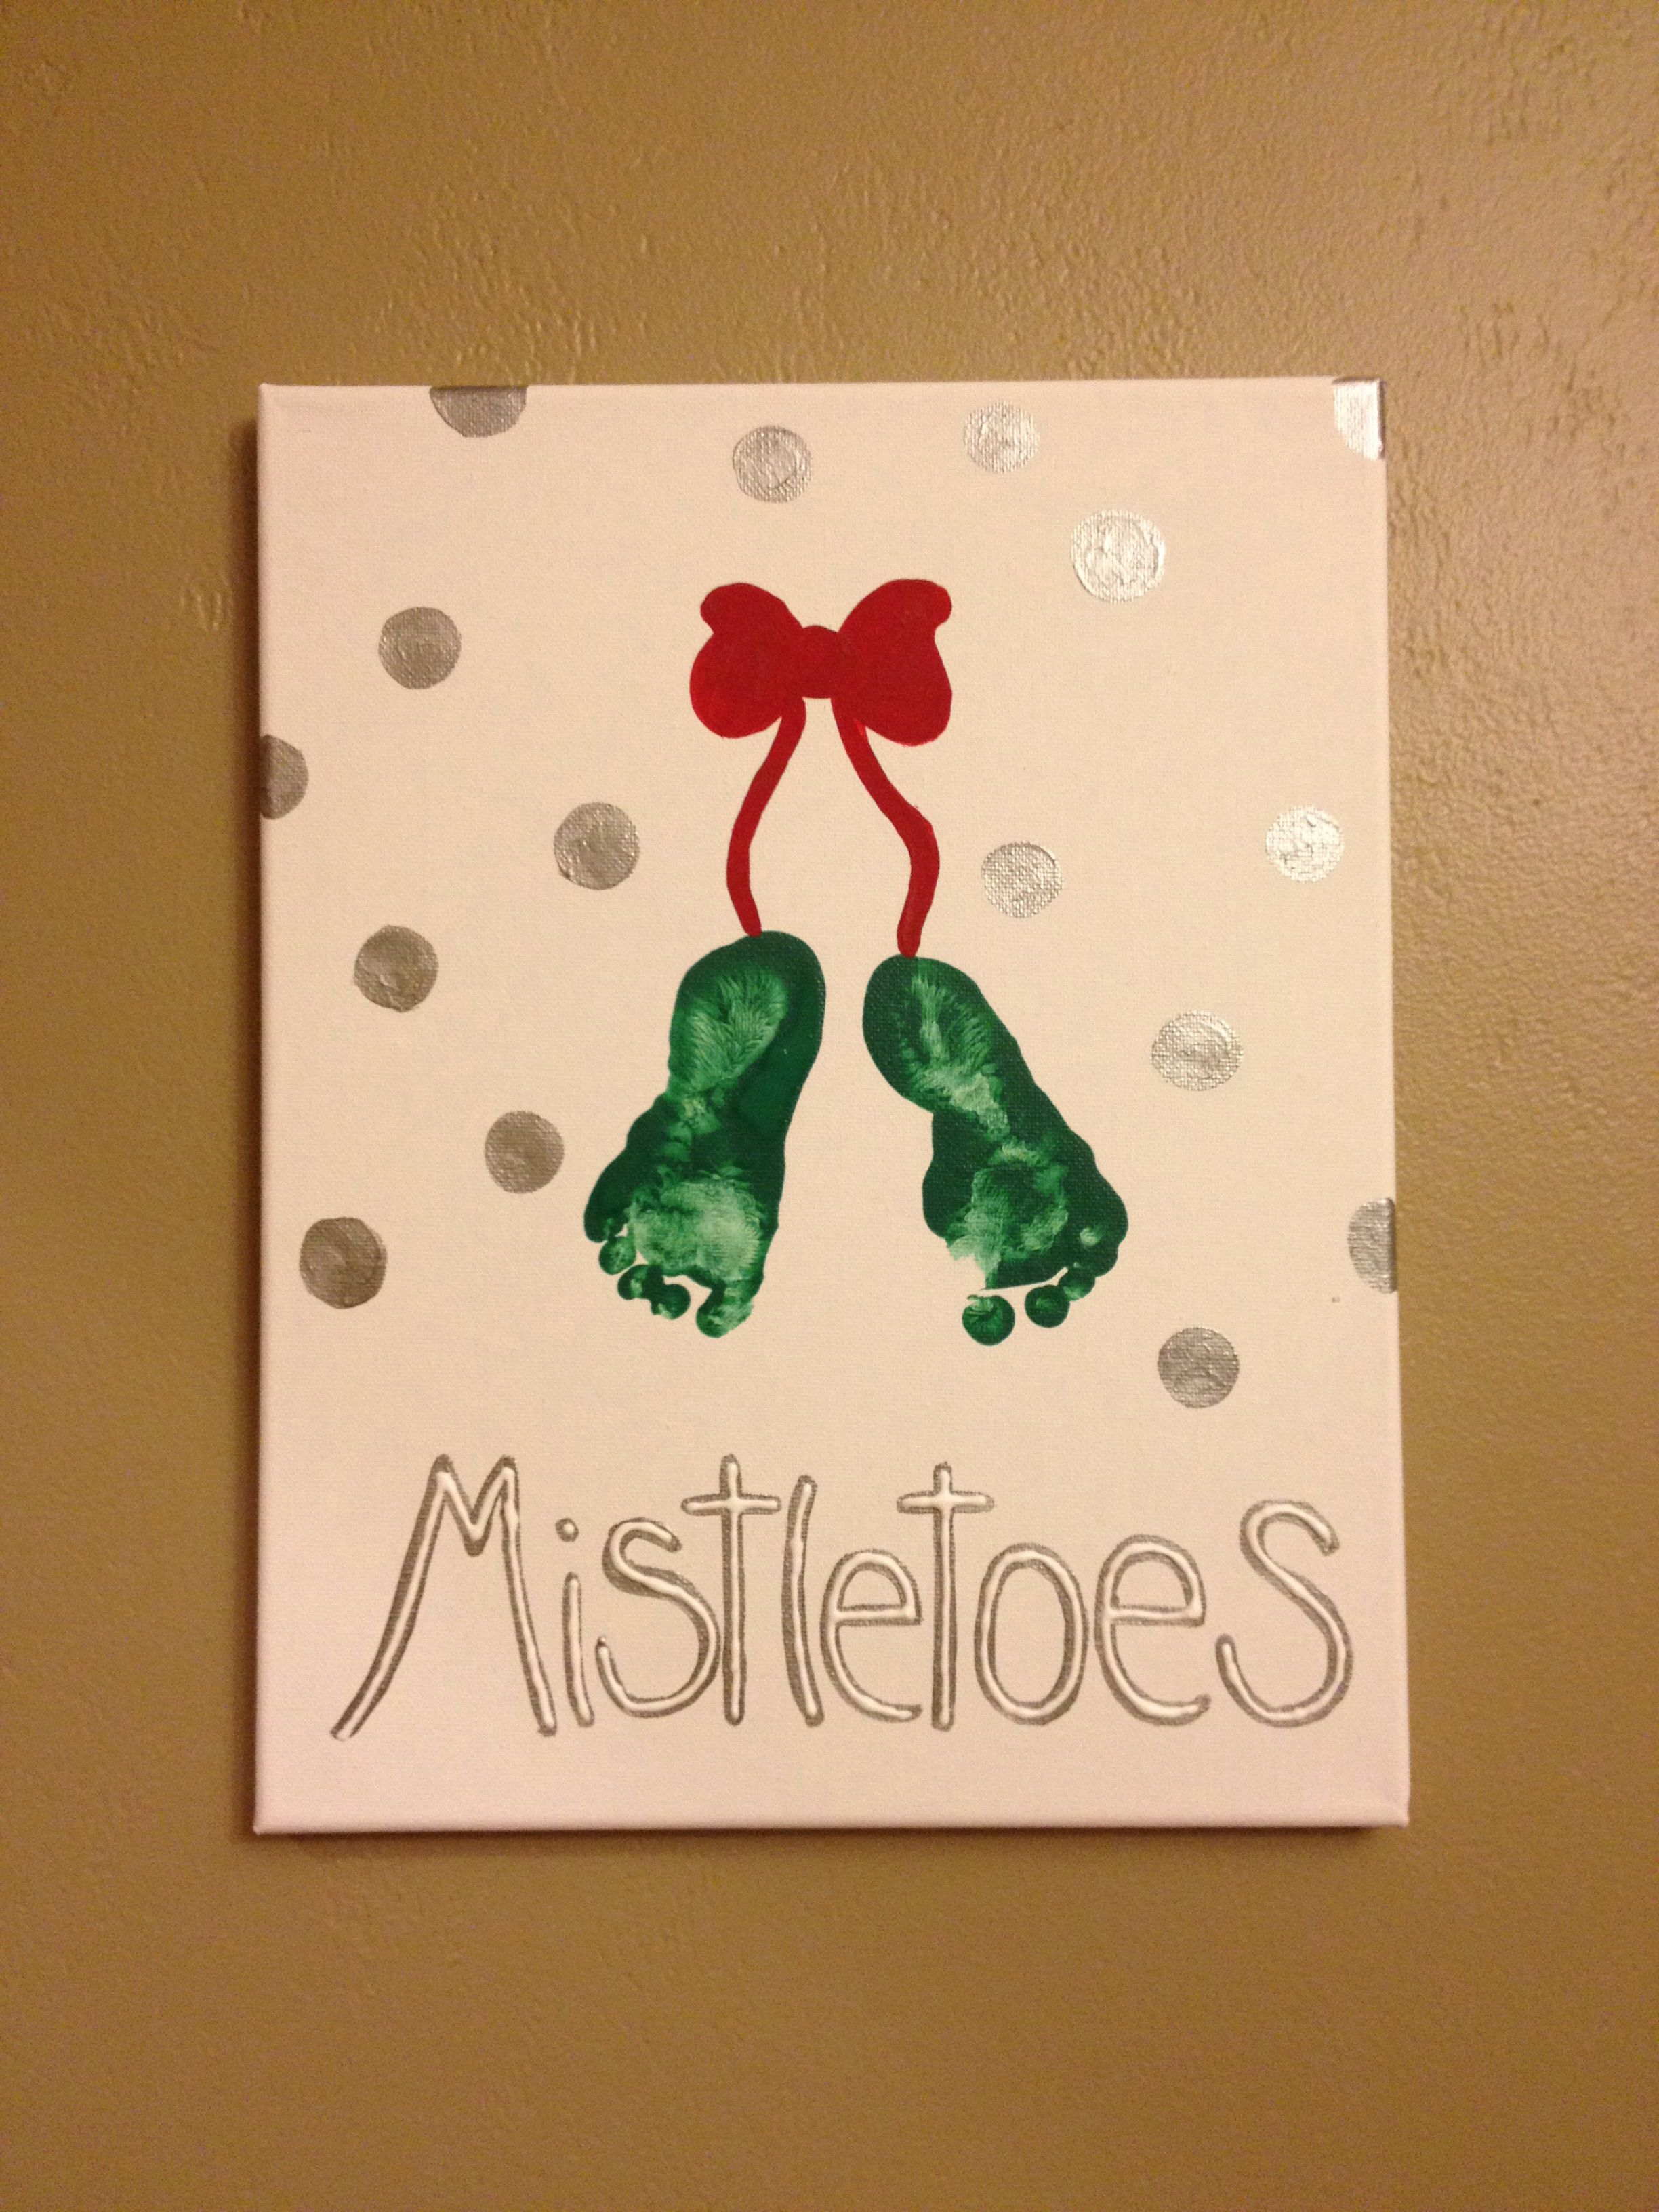 Baby's first Christmas, little mistletoes #mistletoesfootprintcraft